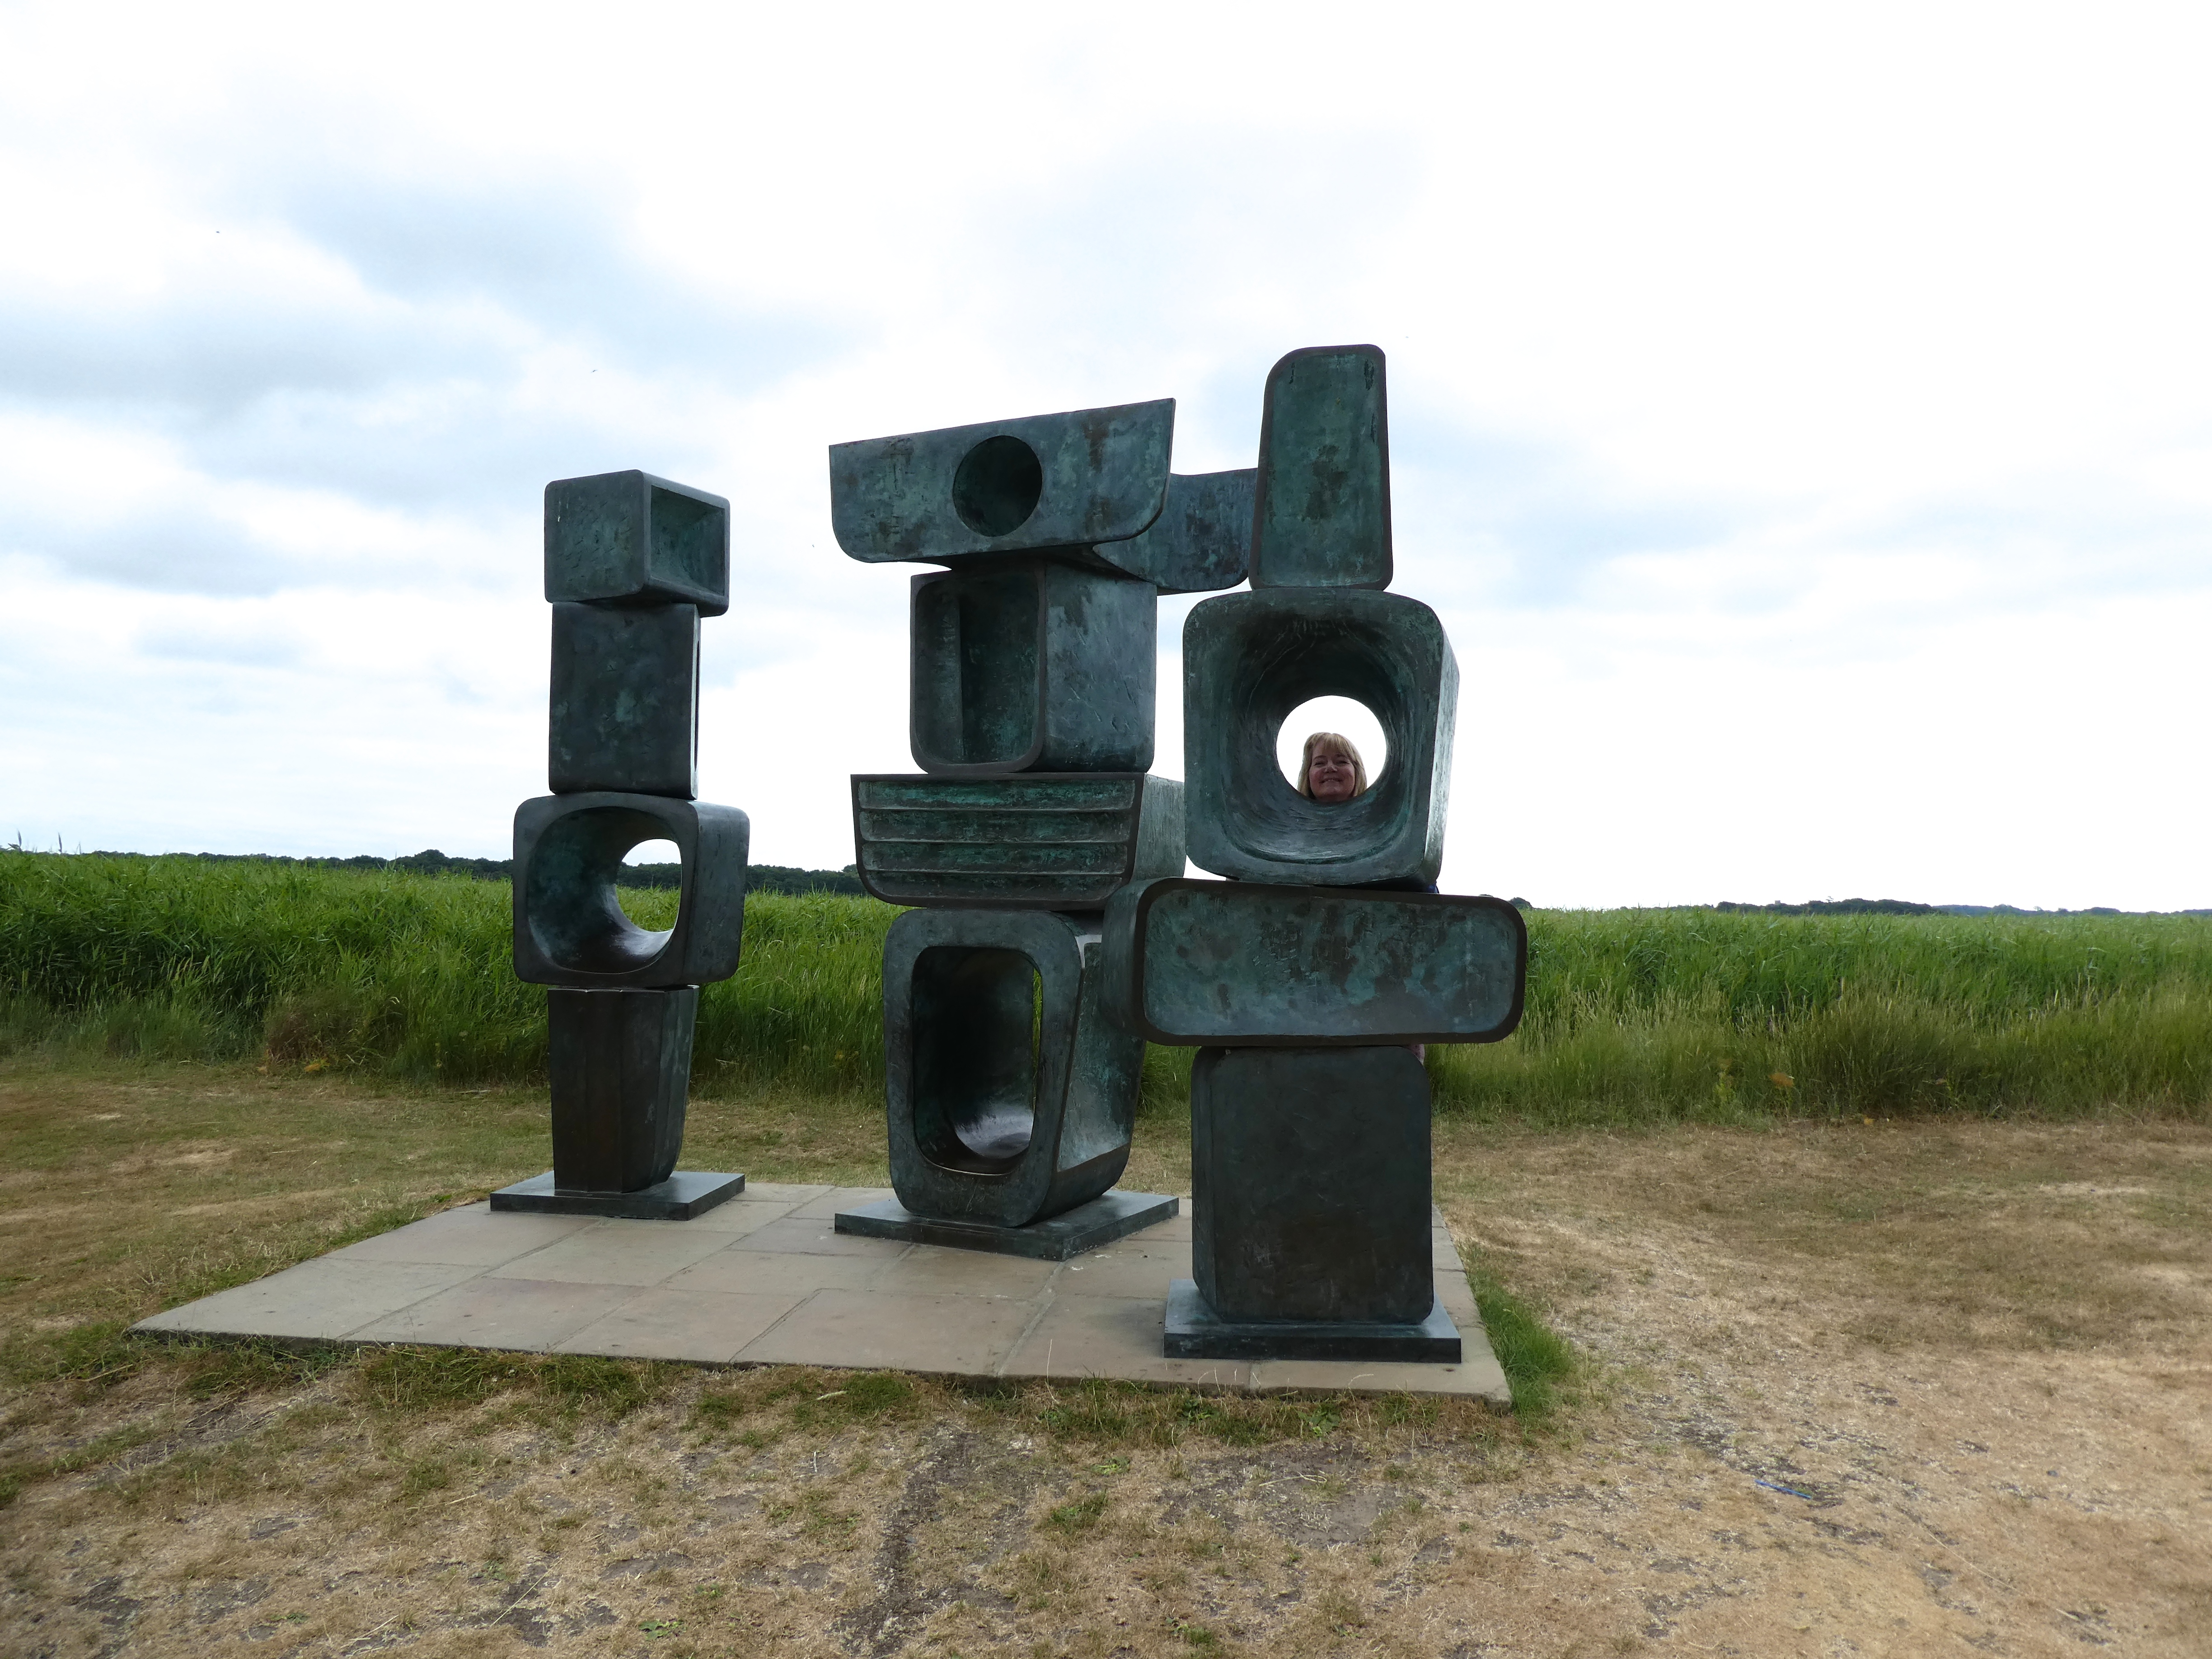 Above: The celebrated Family of Man sculpture by Barbara Hepworth sculpture at Snape Maltings.